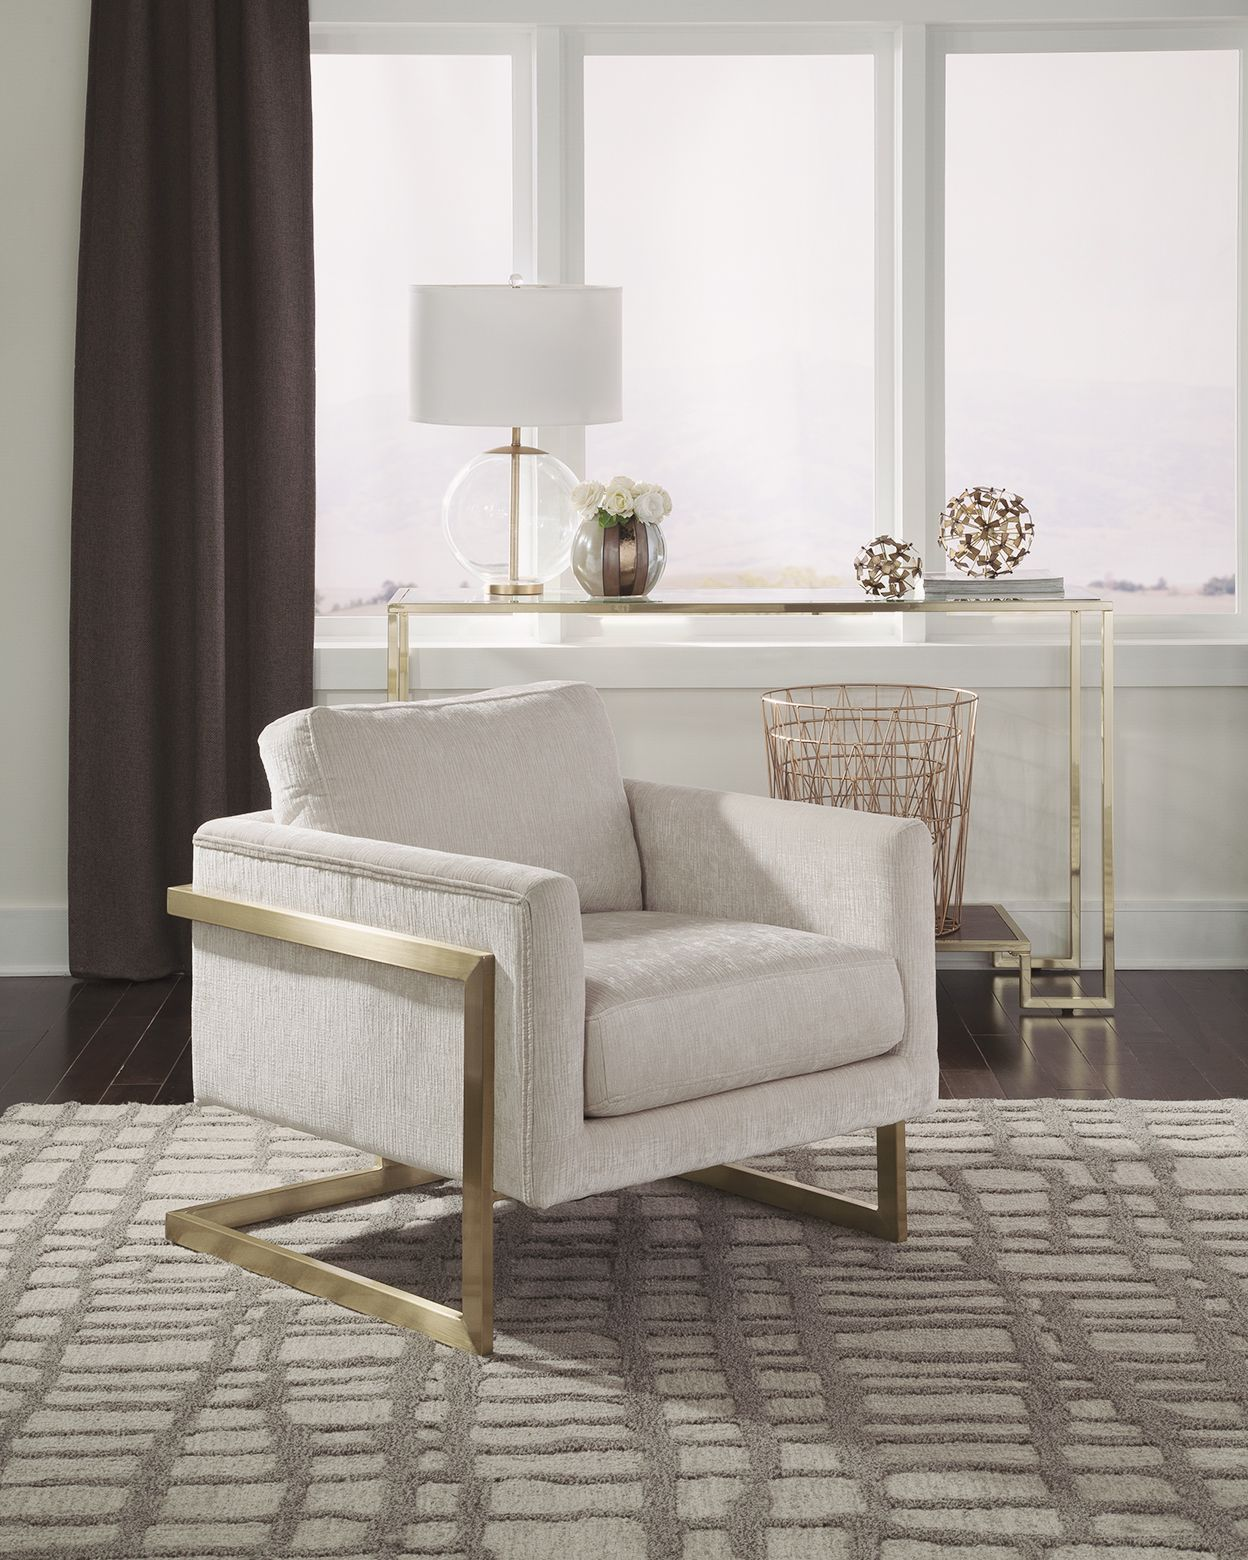 Define your personal style with our new accent chairs Pictured